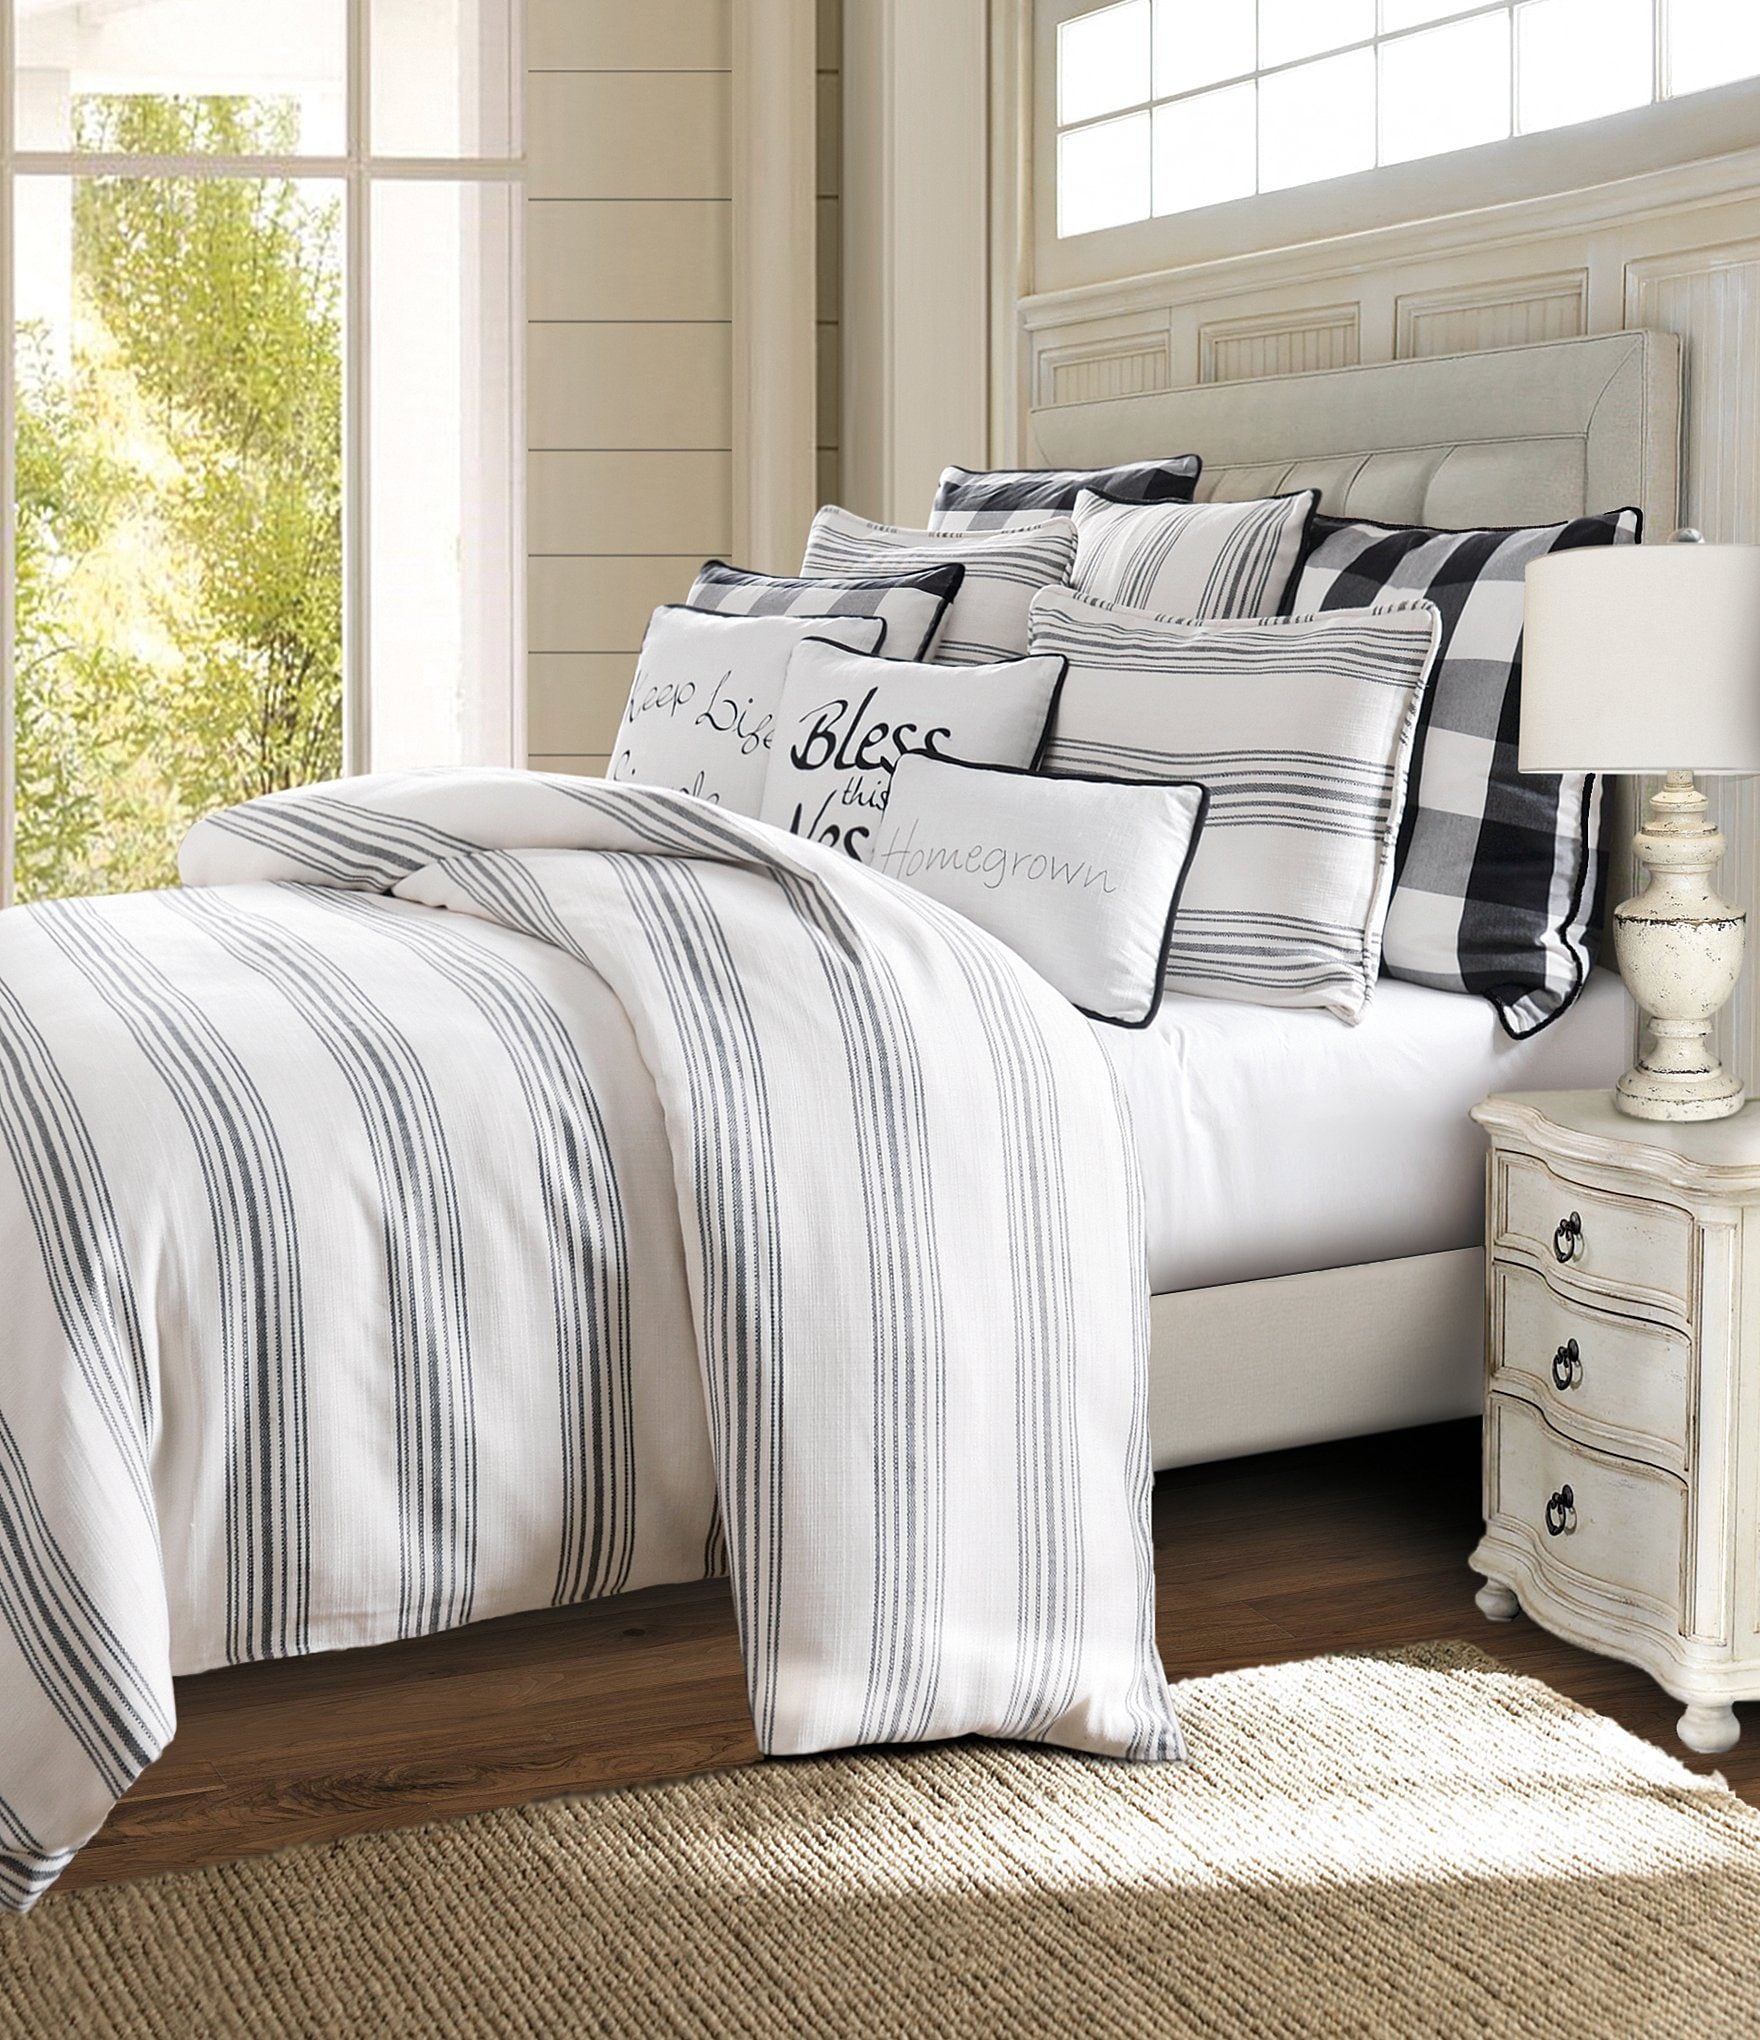 Hiend Accents Blackberry Vintage Striped Comforter Mini Set Dillard S